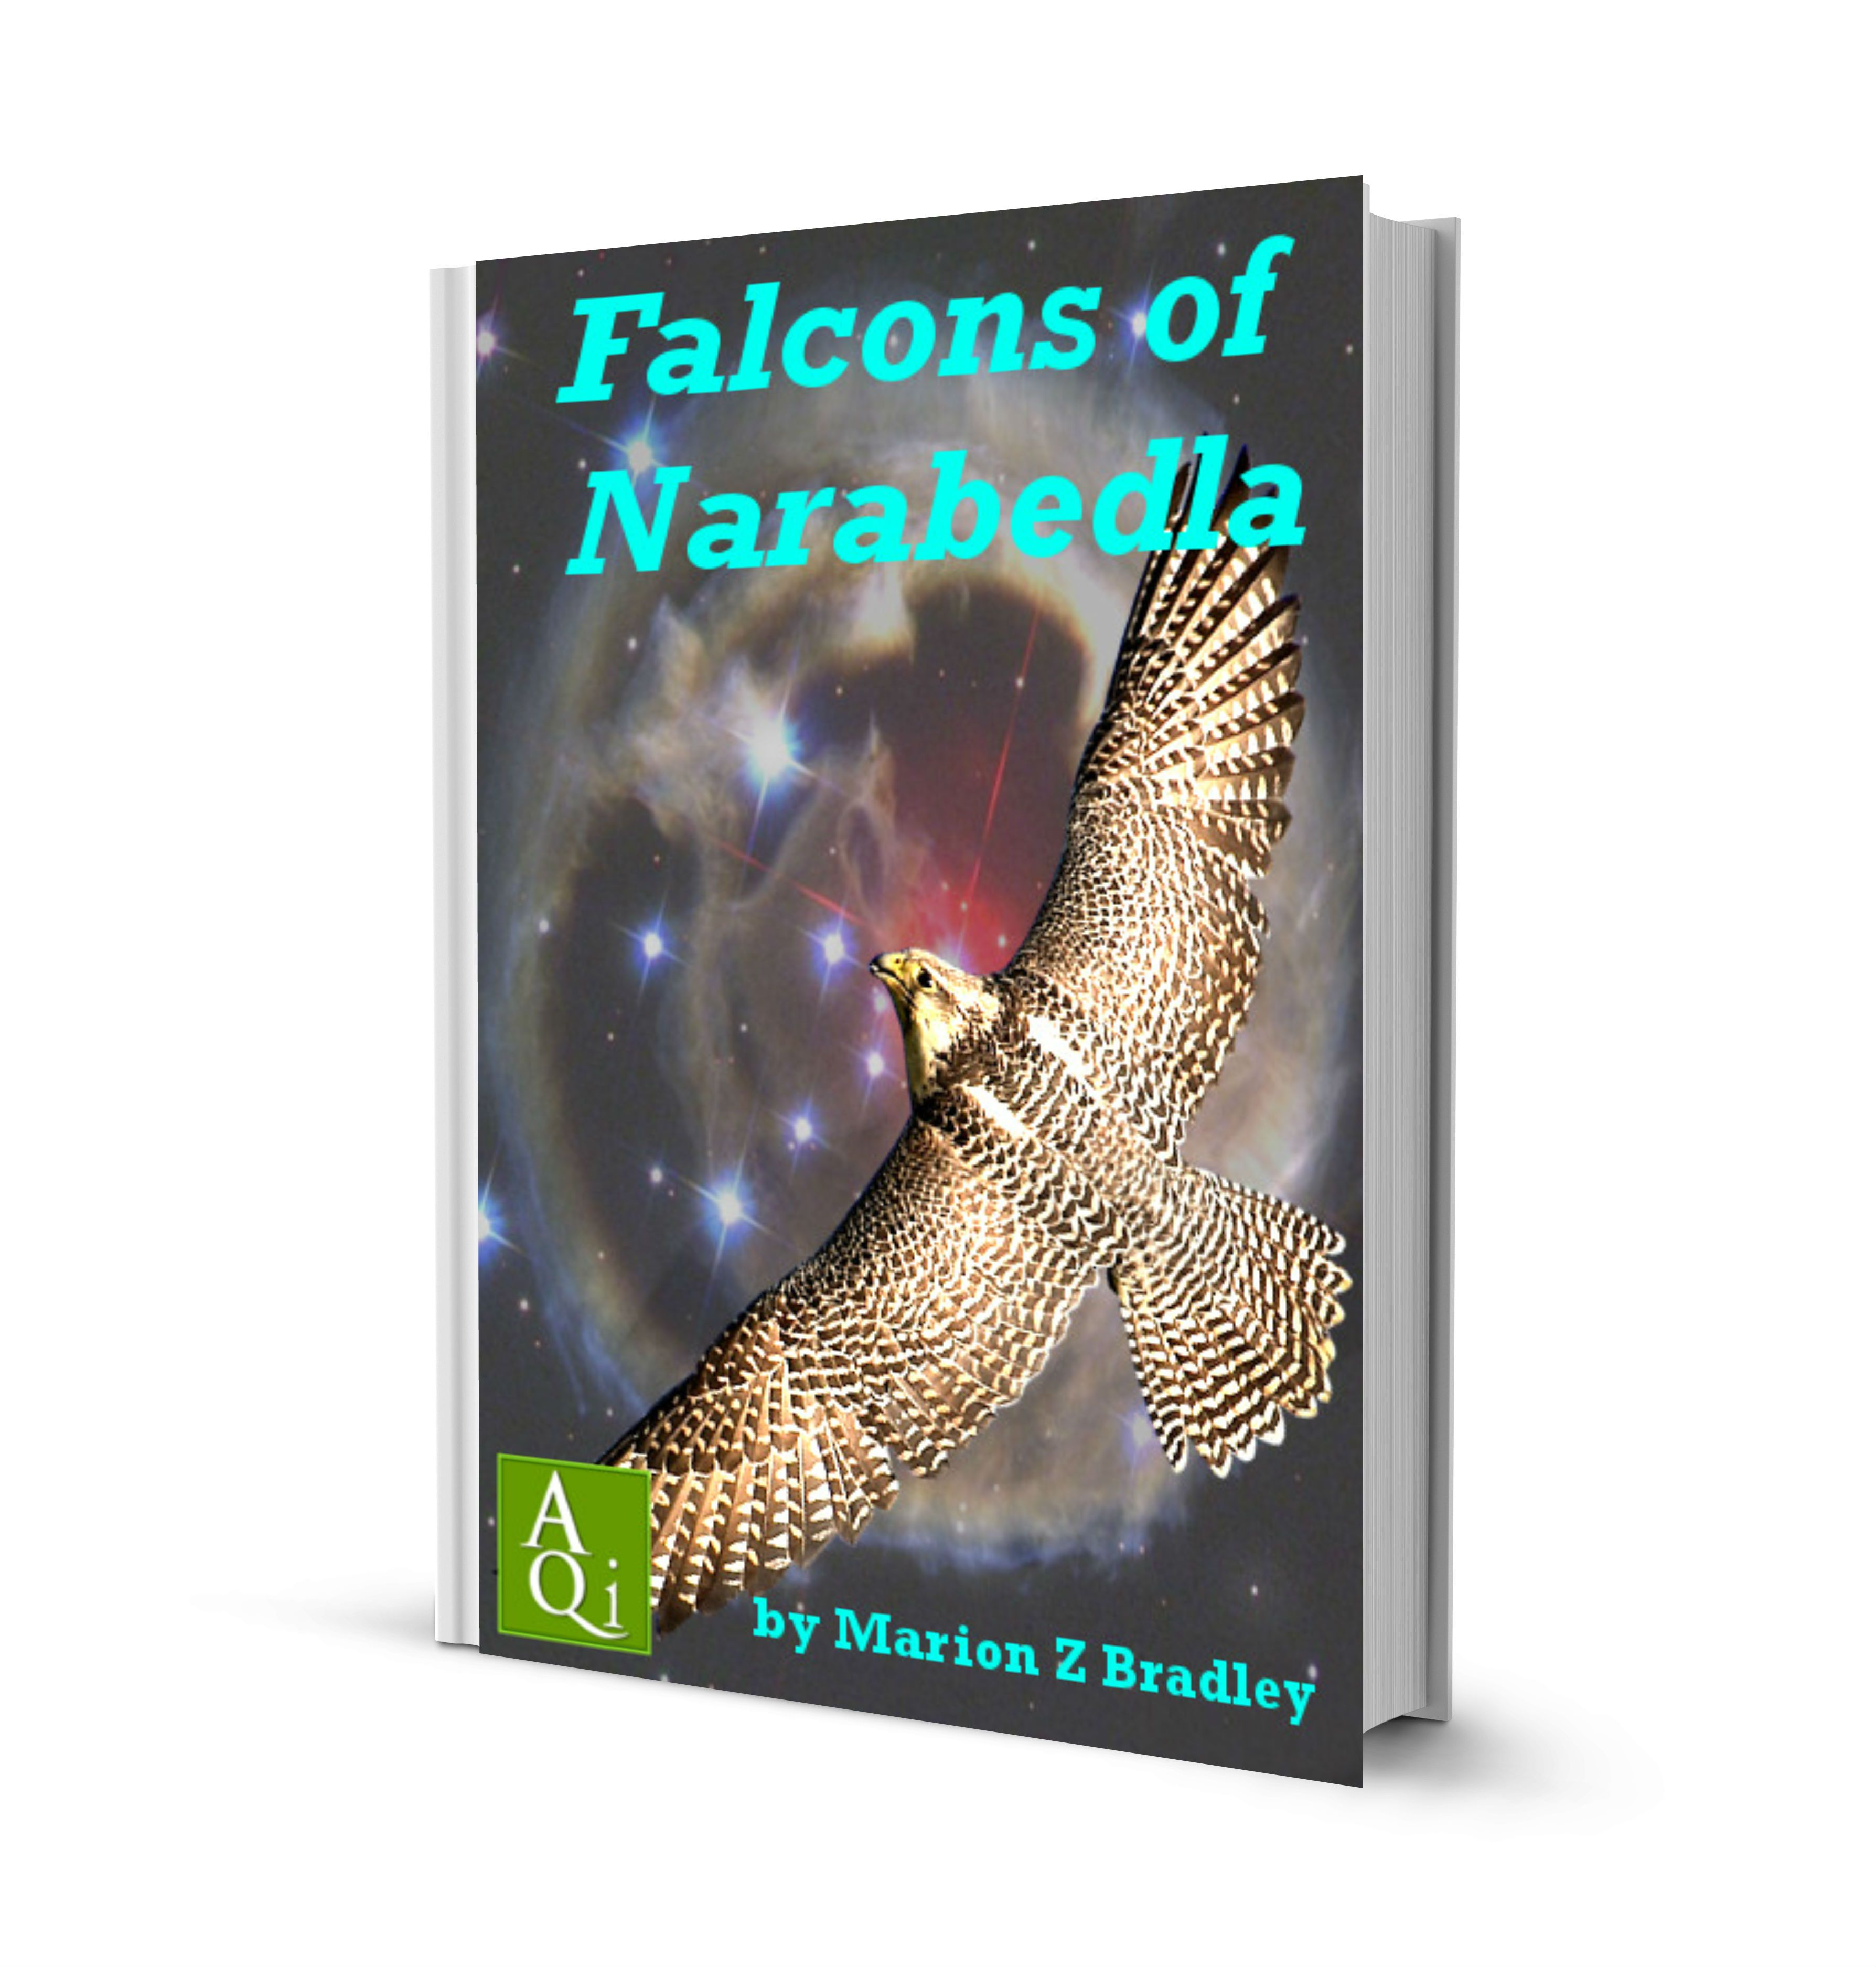 The falcons of narabedla by marion z bradley ebook quality free quizzes fandeluxe Choice Image